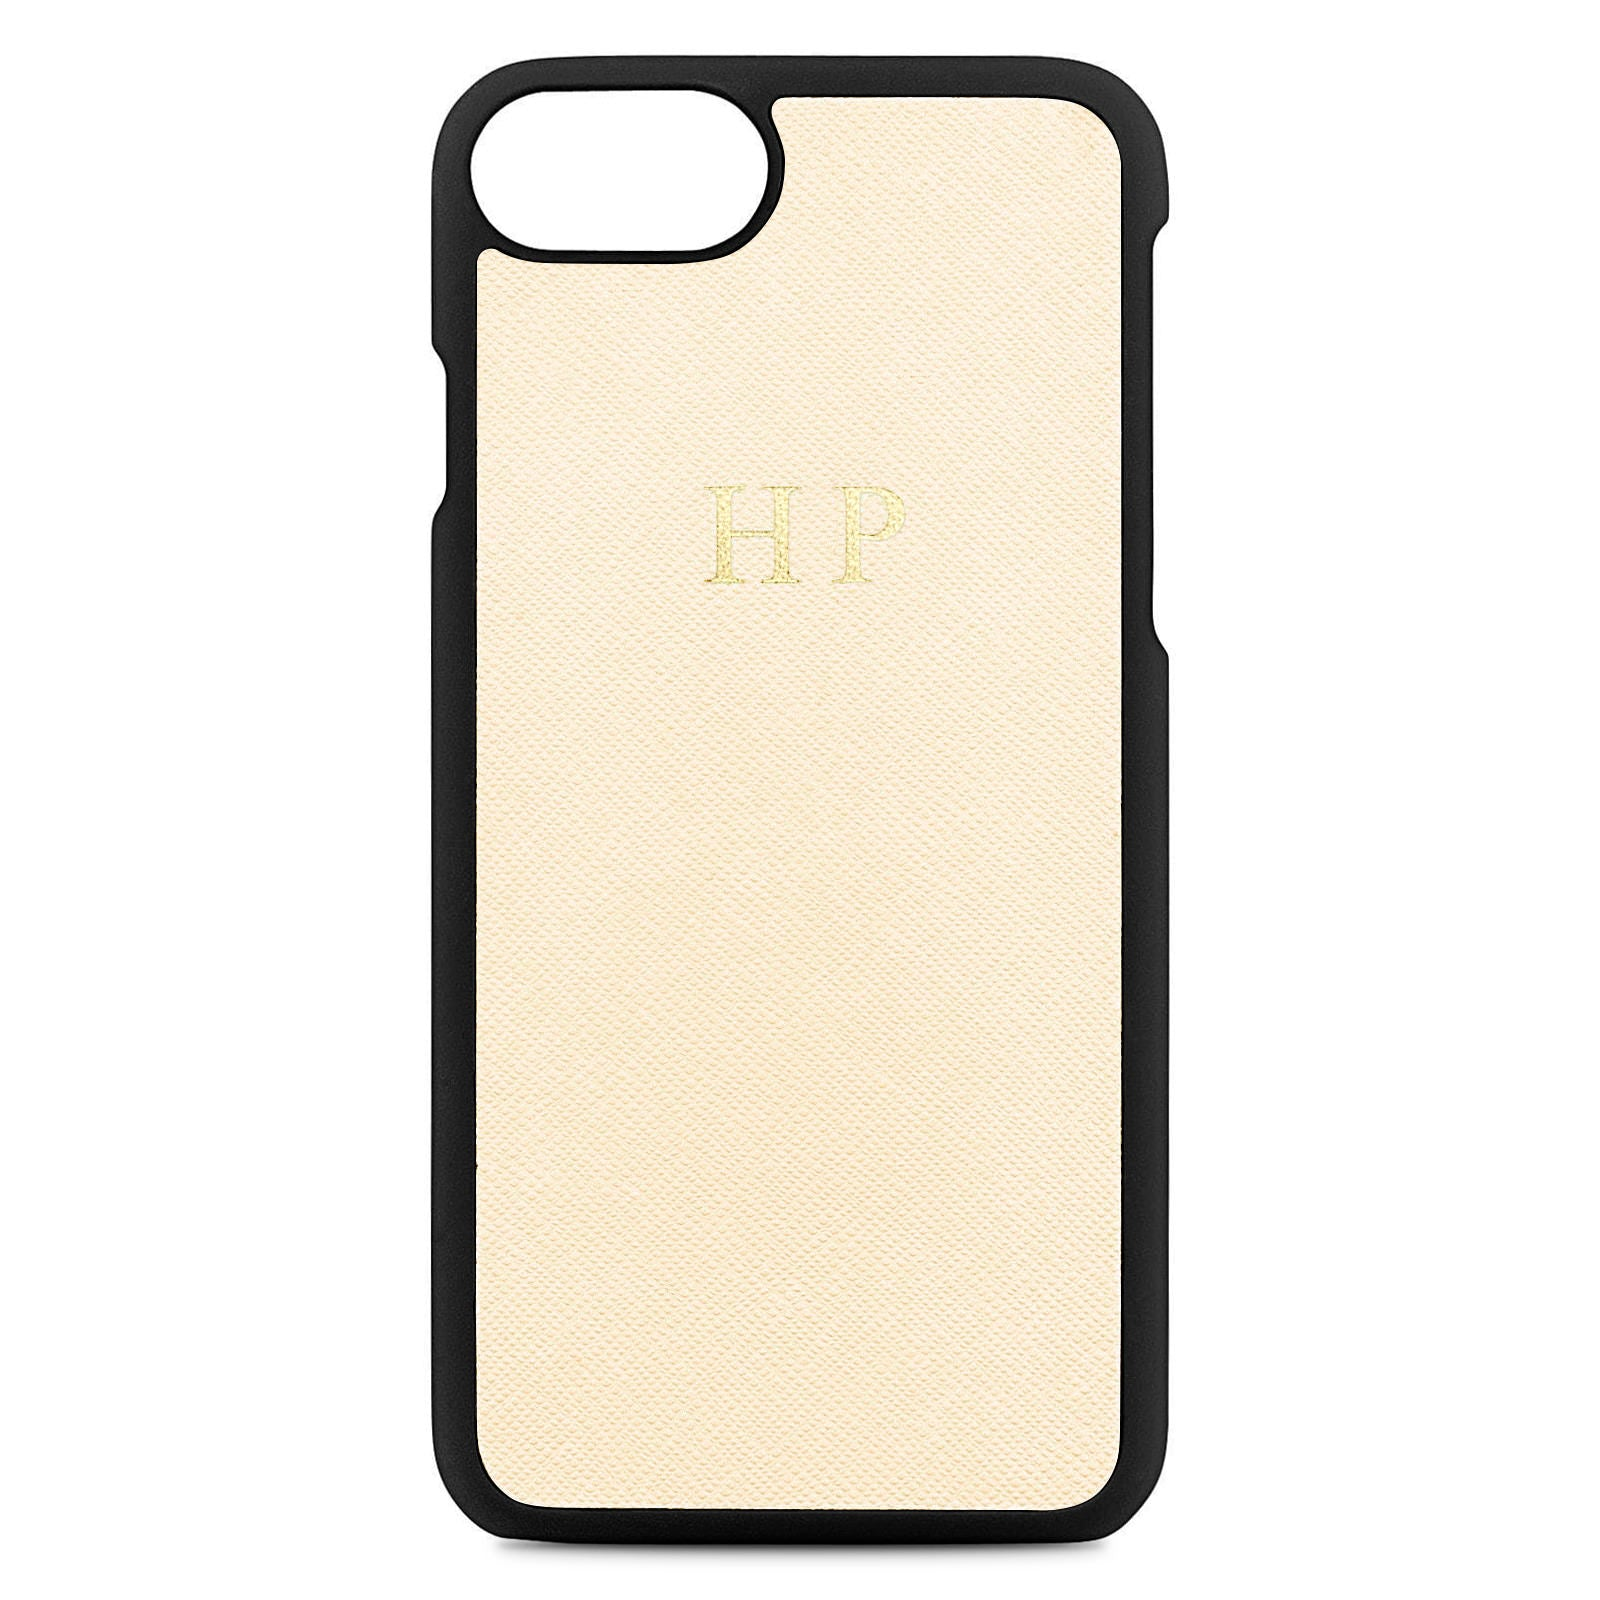 Personalised Ivory Saffiano Leather iPhone Case